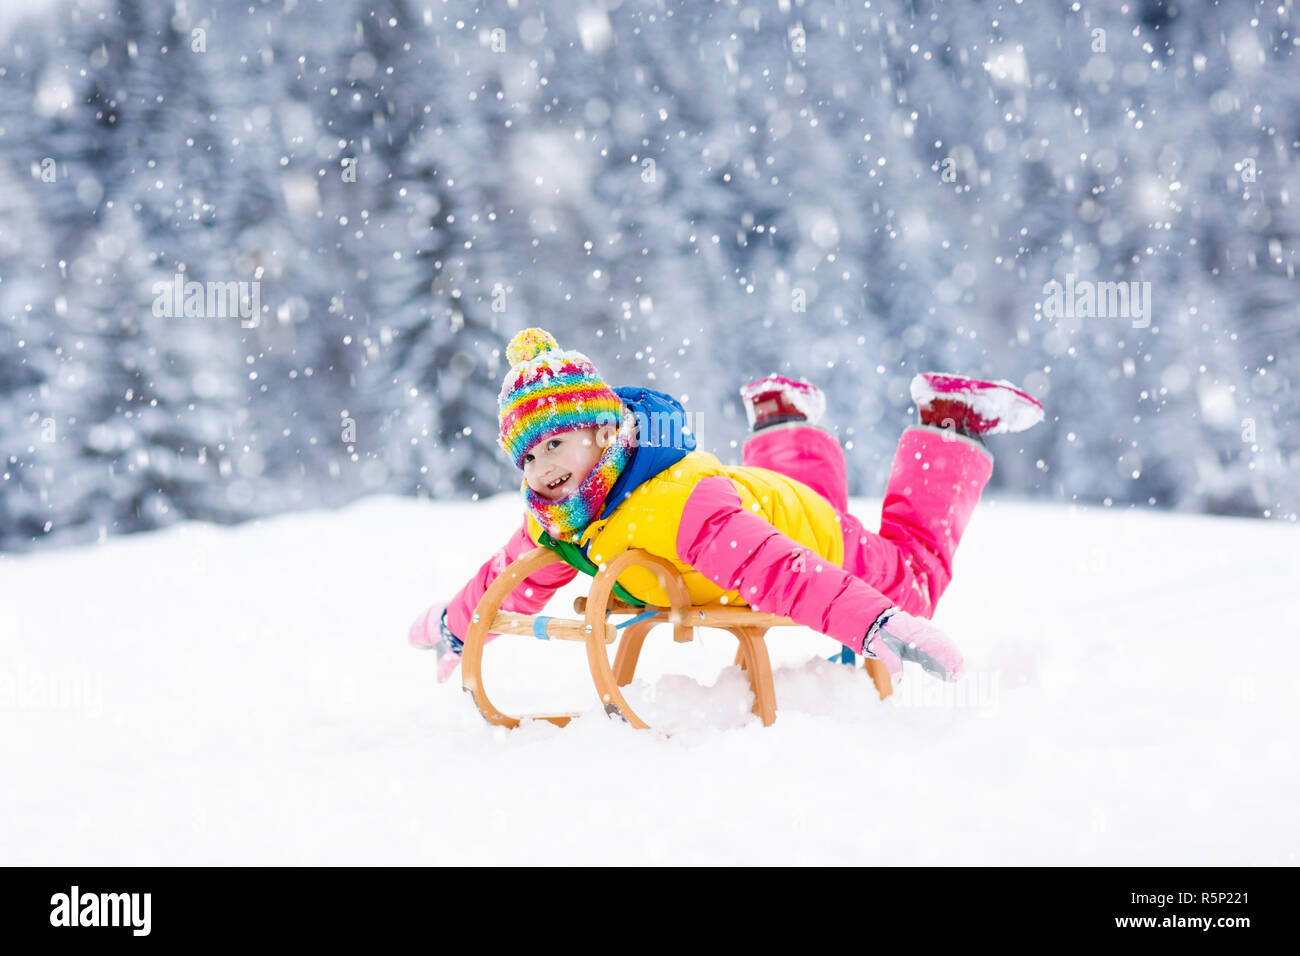 dc0aae3f0 Little girl enjoying a sleigh ride. Child sledding. Toddler kid ...